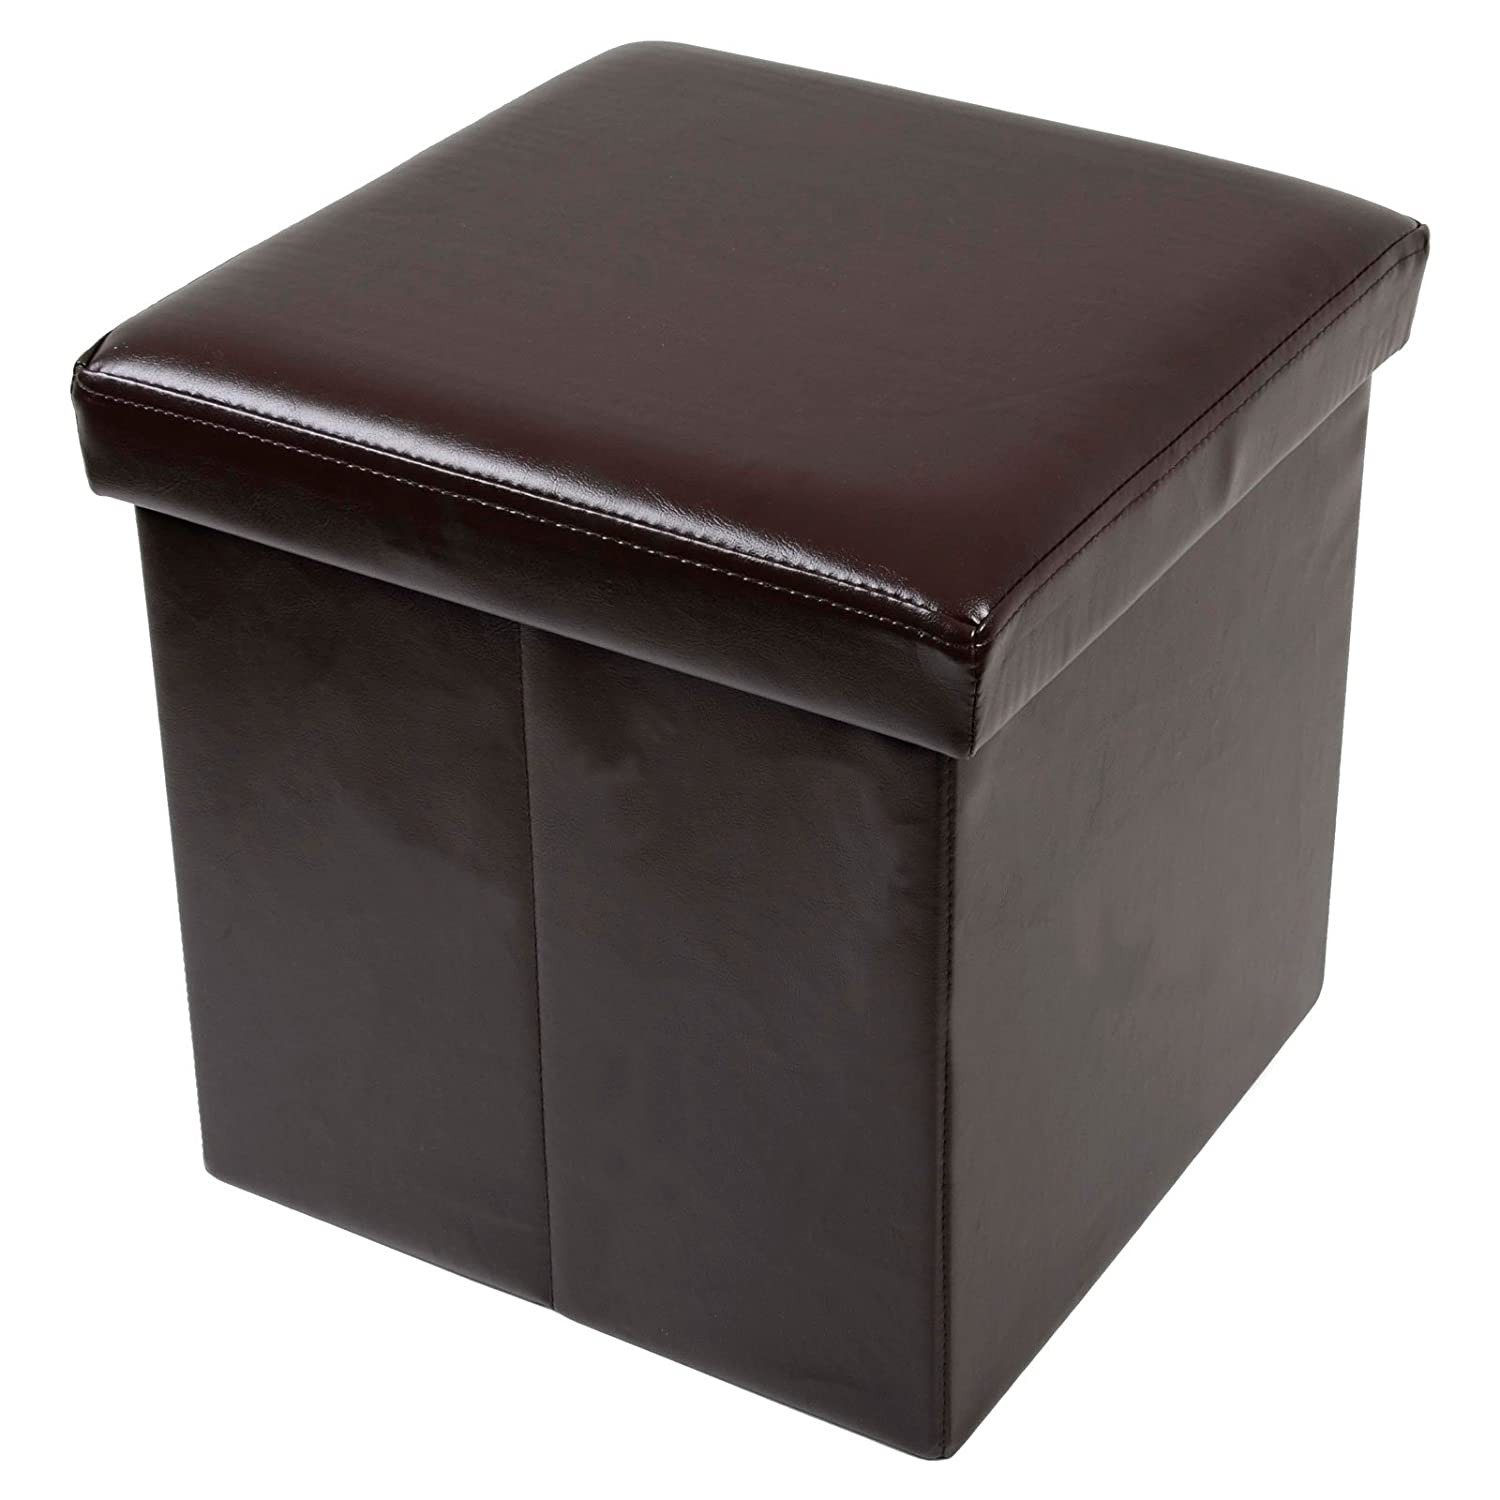 XS Stock Folding Storage Stool With Lid And Ivory Faux Leather 38cm Cube  Pouffe Seat Part 57